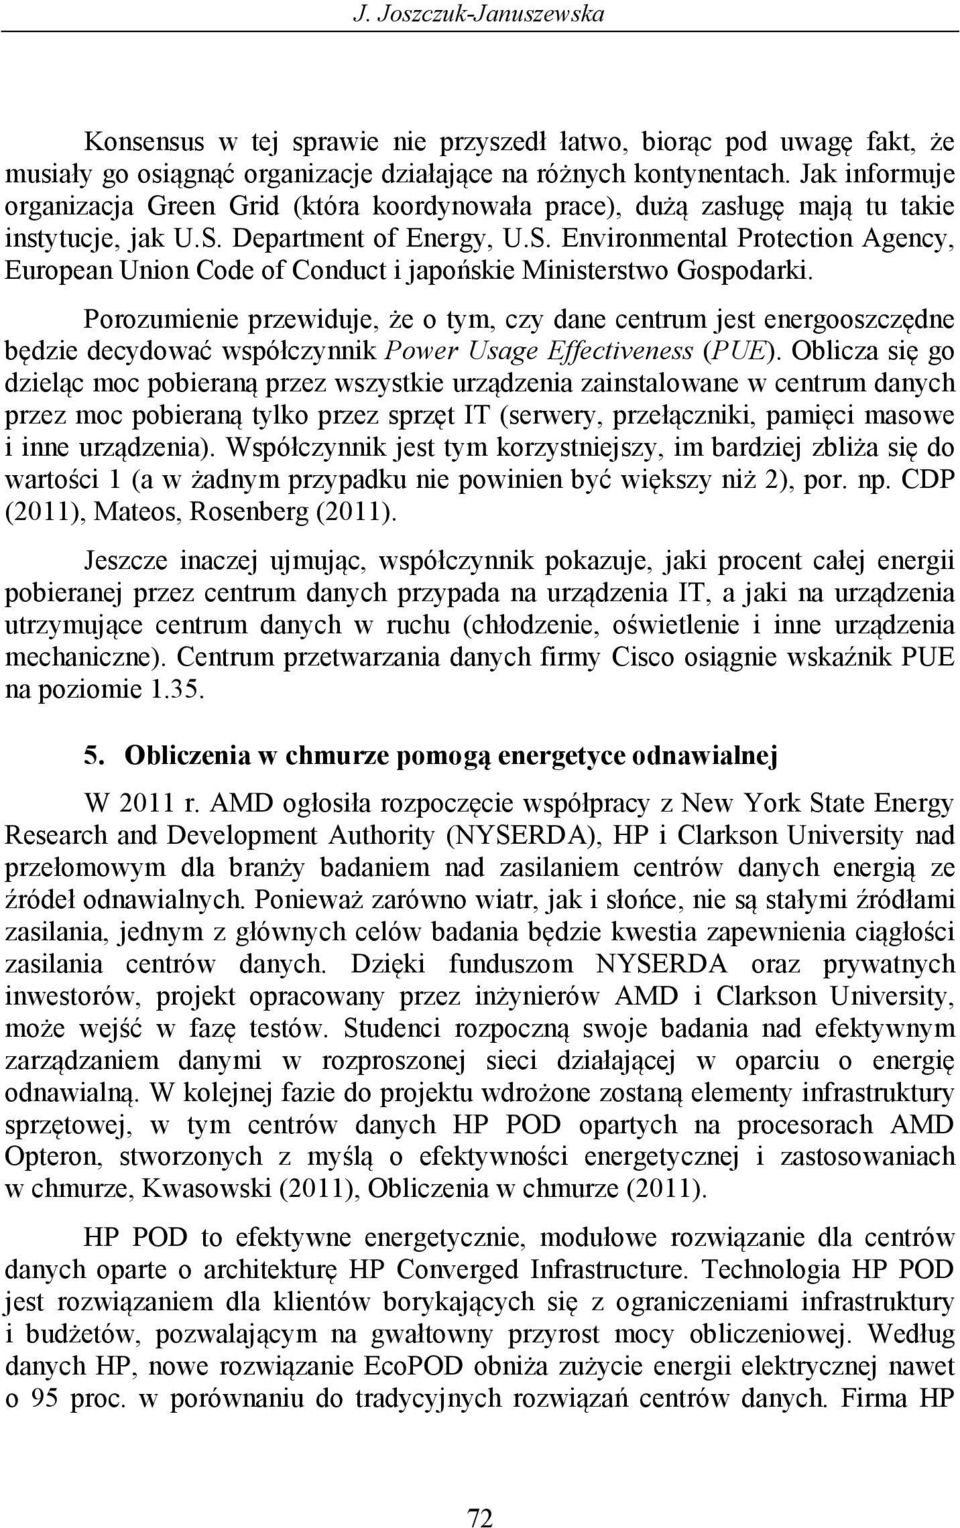 Department of Energy, U.S. Environmental Protection Agency, European Union Code of Conduct i japońskie Ministerstwo Gospodarki.